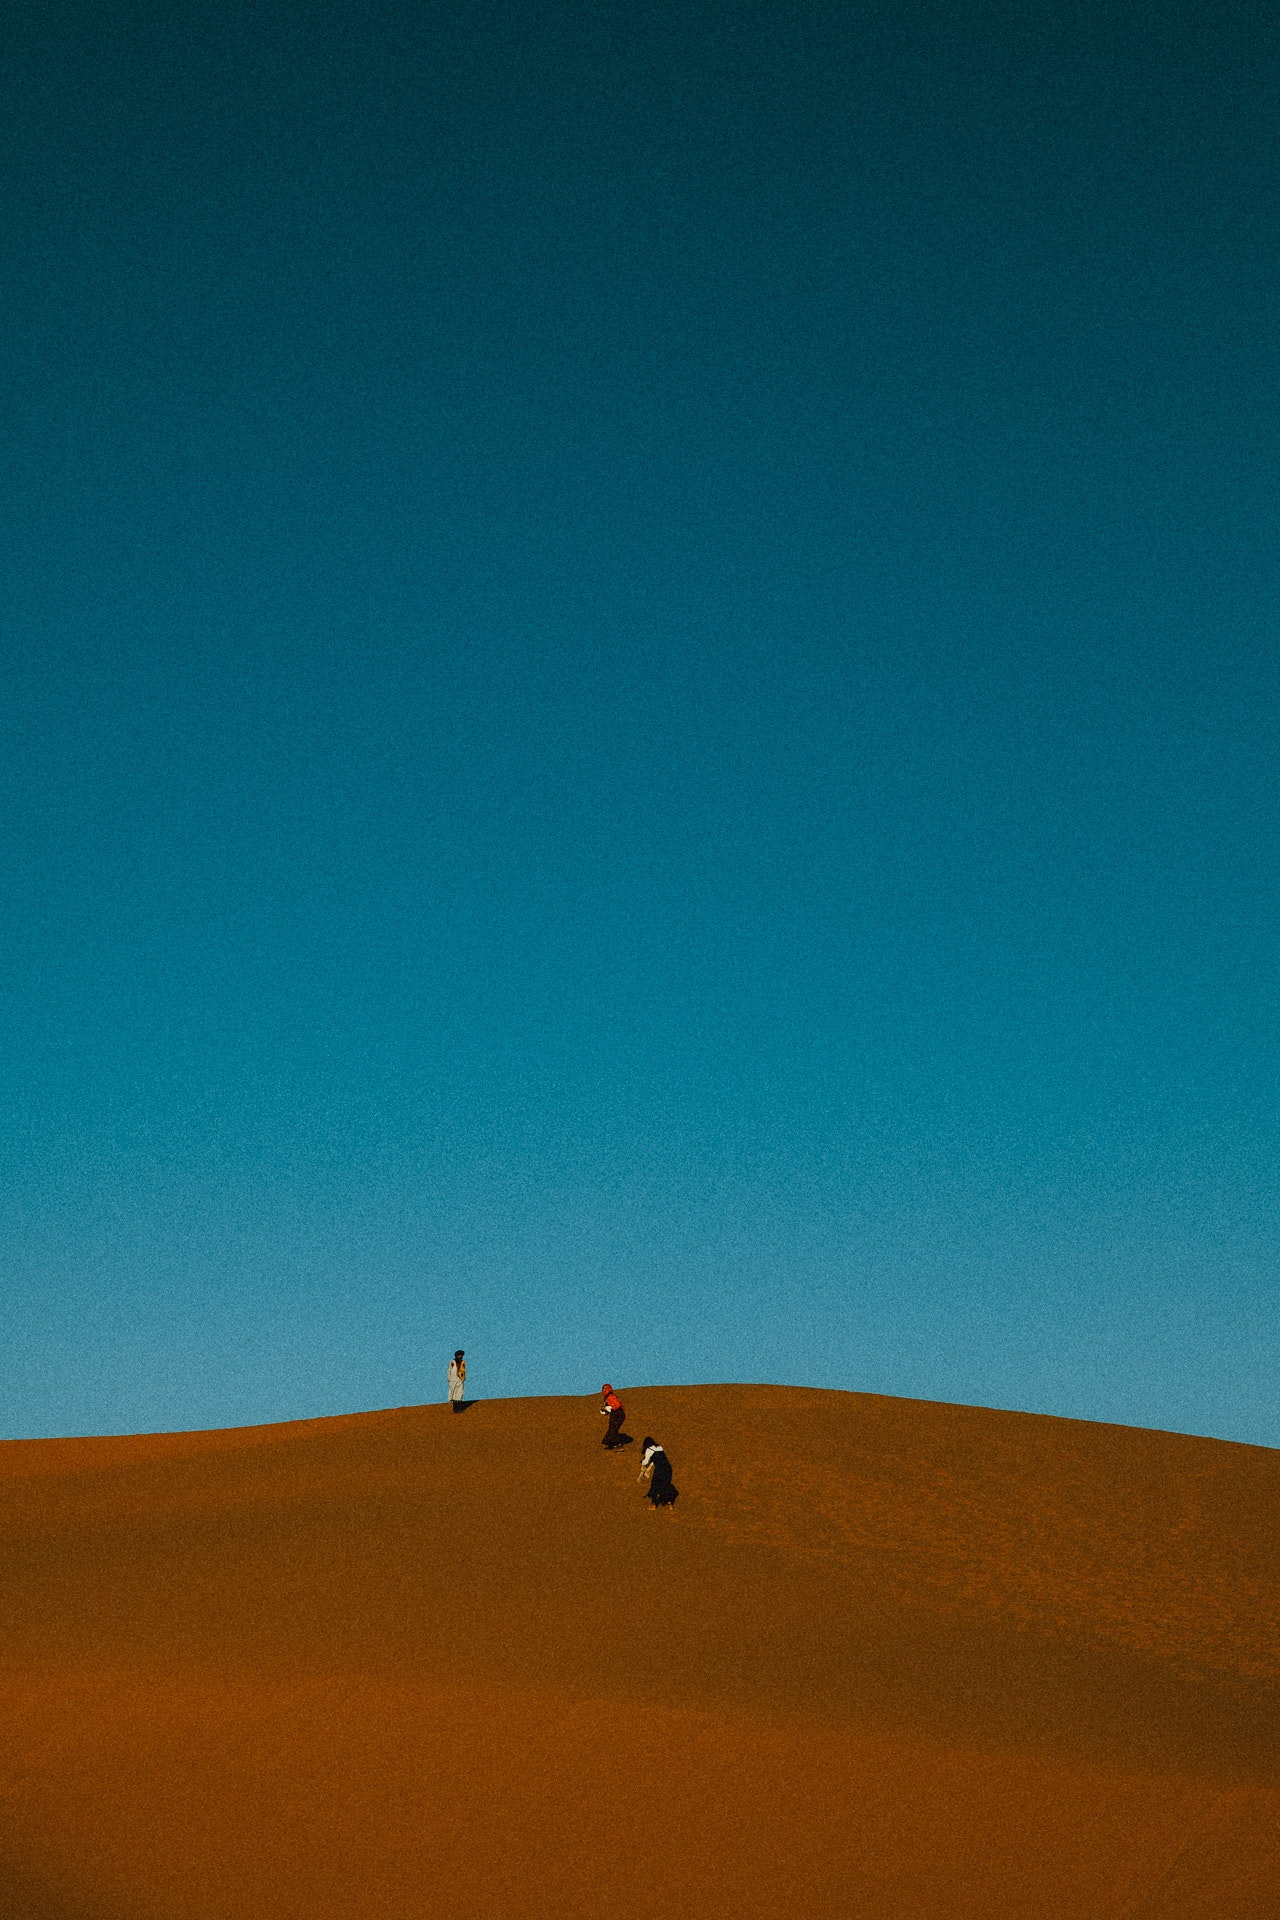 Travelers climbing the last steps to get to the high dunes to watch a full 360 view of the sunset over the dunes.